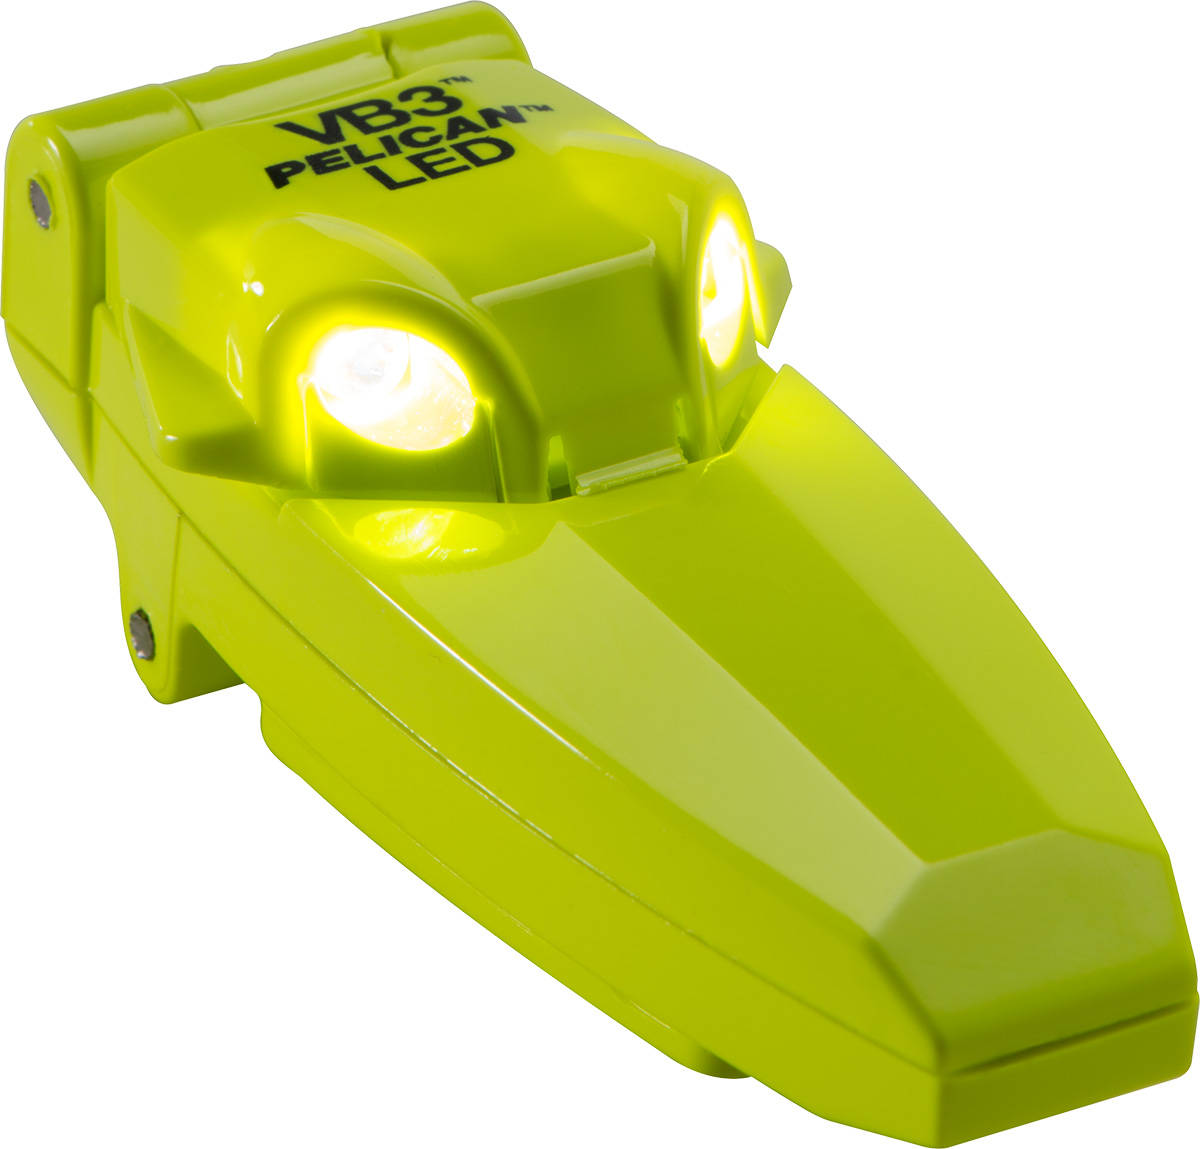 pelican peli products 2220 best yellow clipon shirt led light